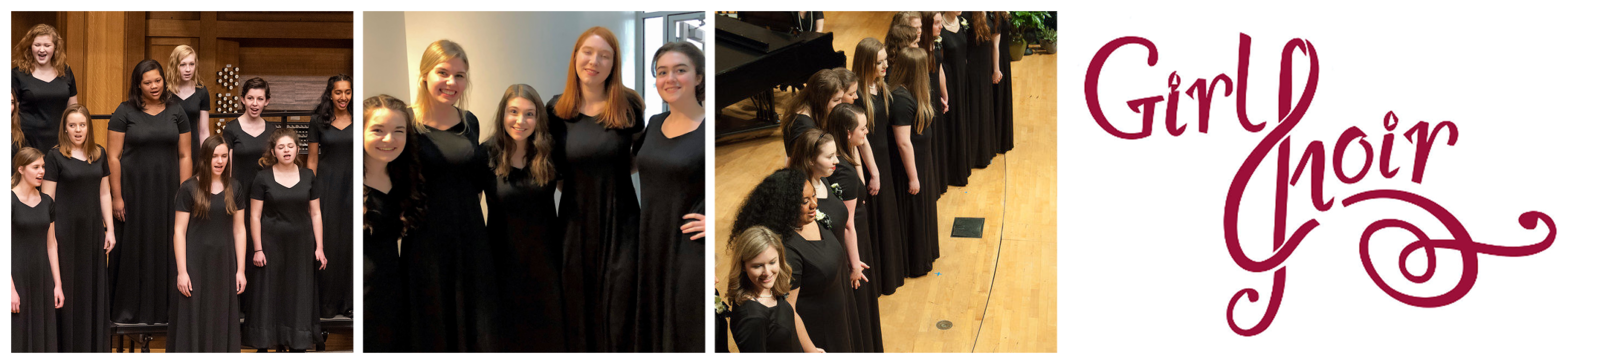 "Three photos: Bel Canto singing during a concert, 5 students smiling with their arms around each other, Bel Canto seniors holding hands in a line at the front of the stage. The Girl Choir logo follows, the ""C"" stylized to look like a treble clef."